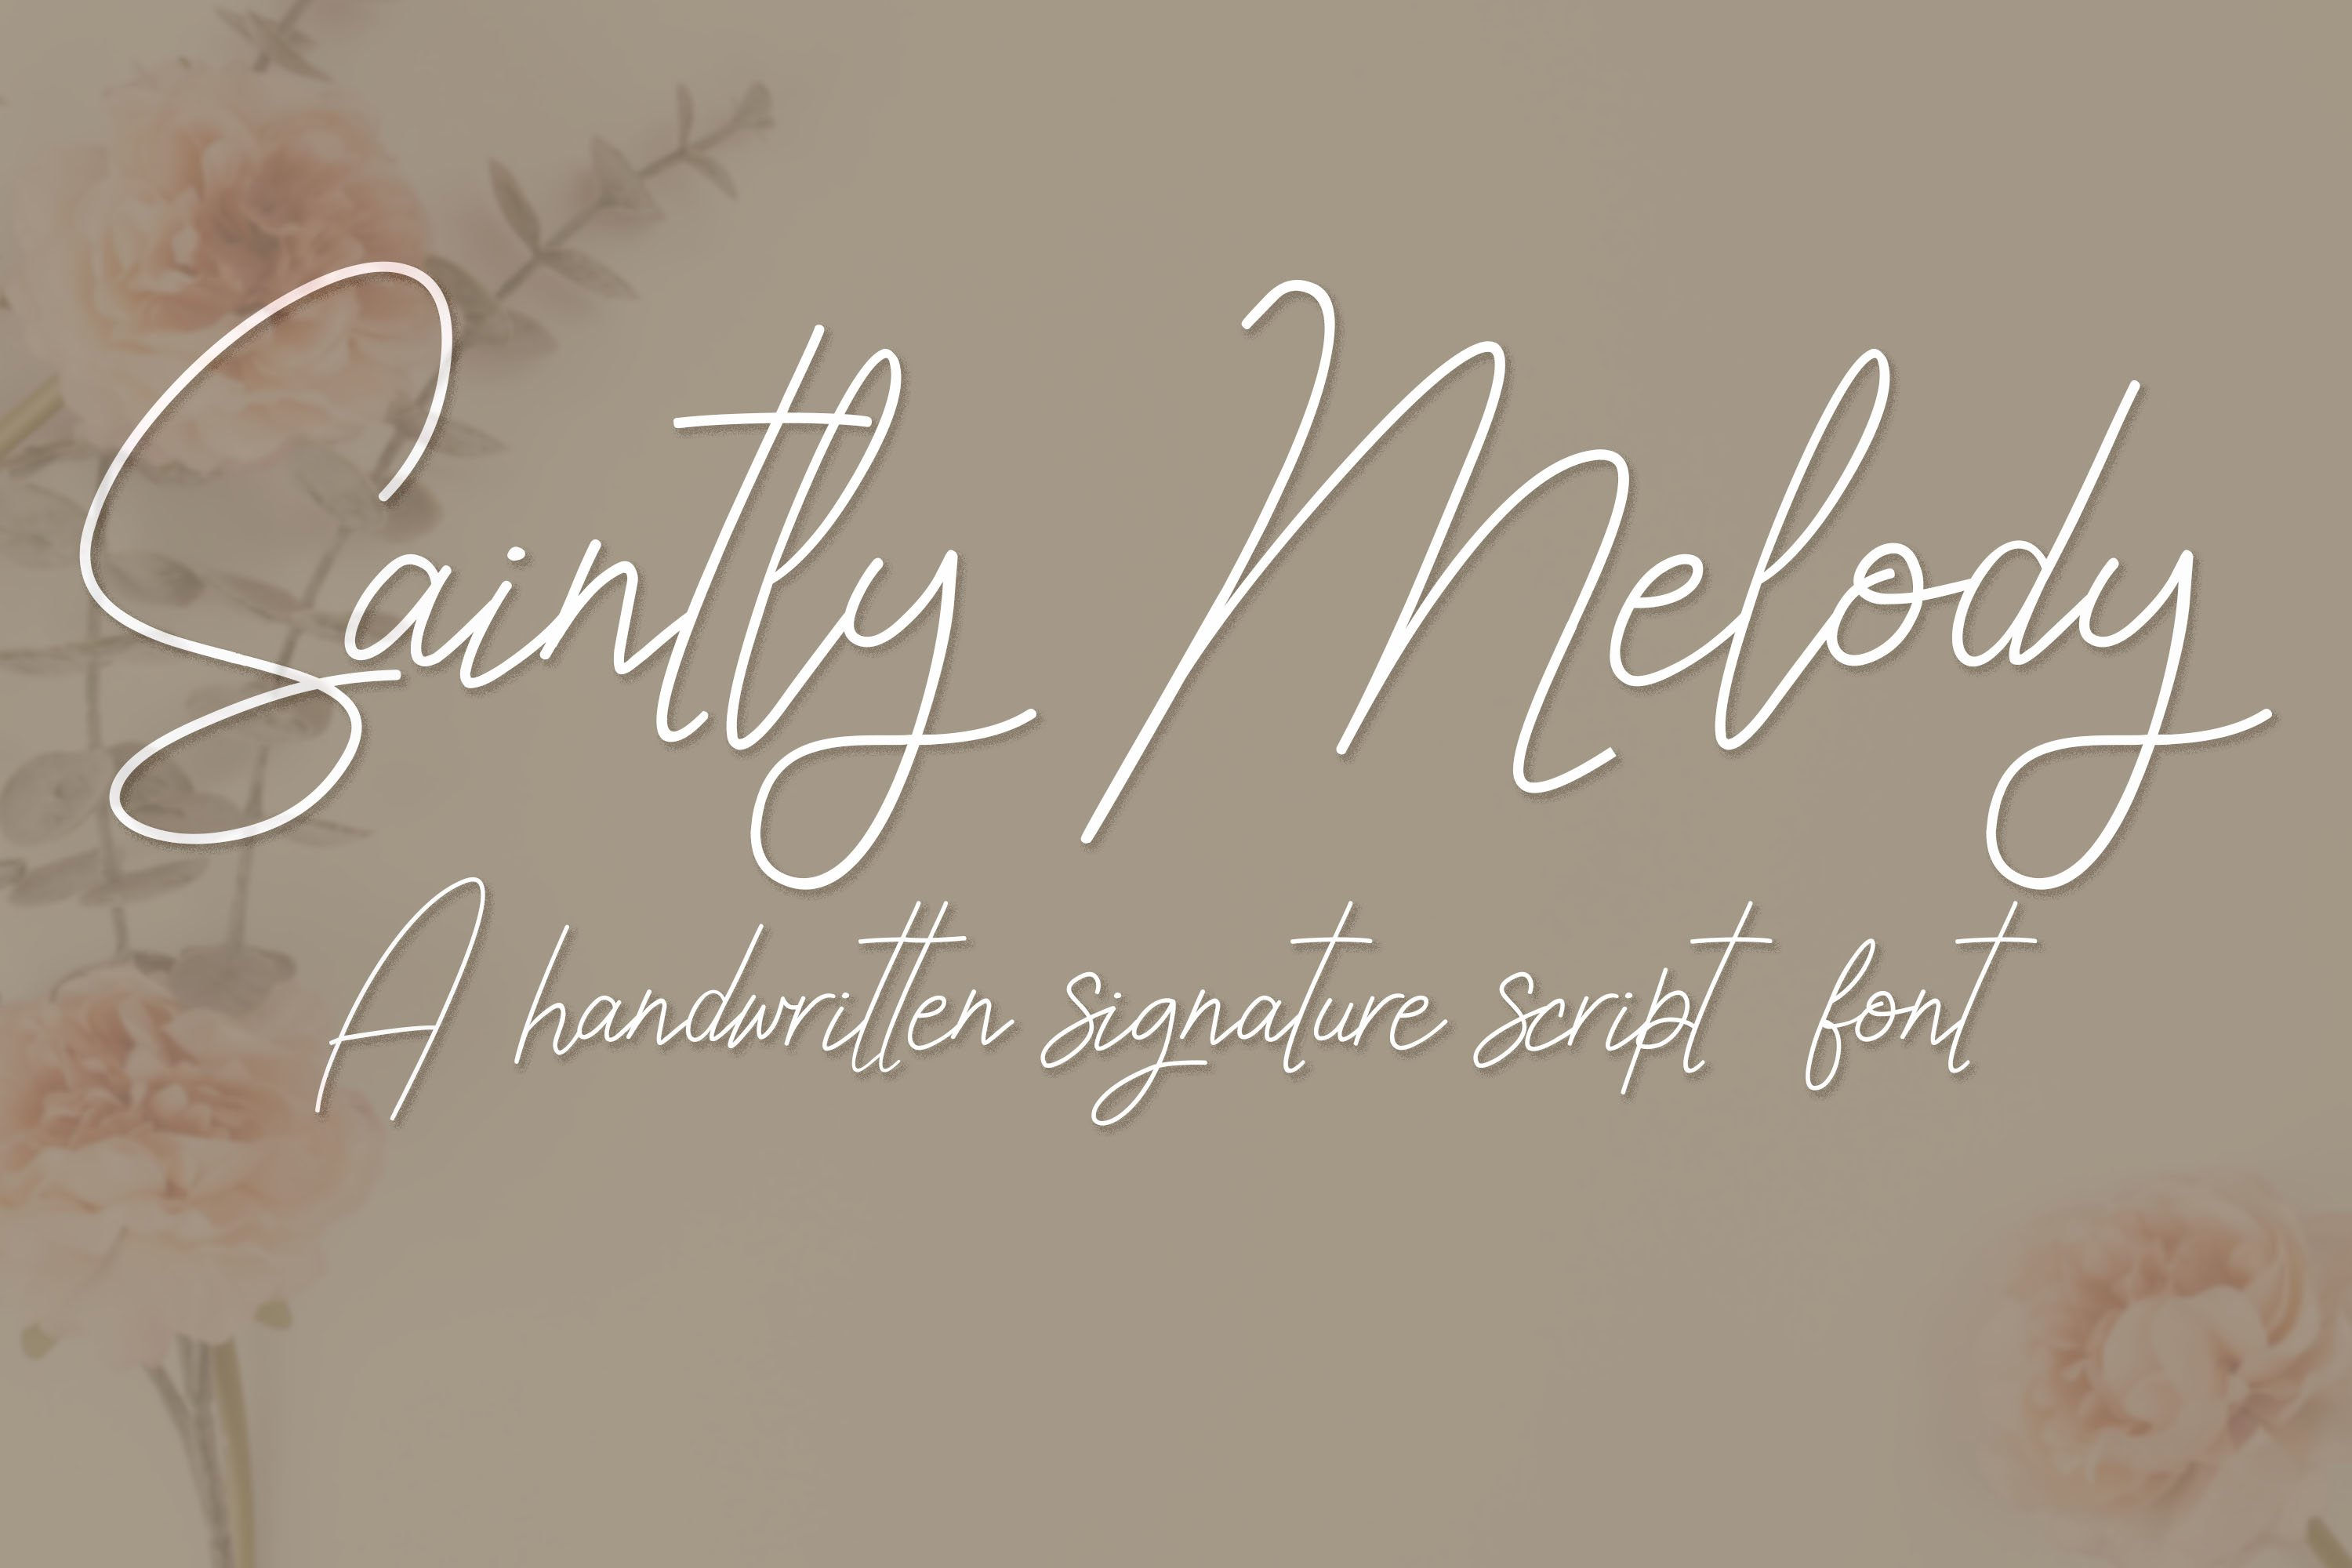 Saintly Melody - a handwritten signature script font example image 1